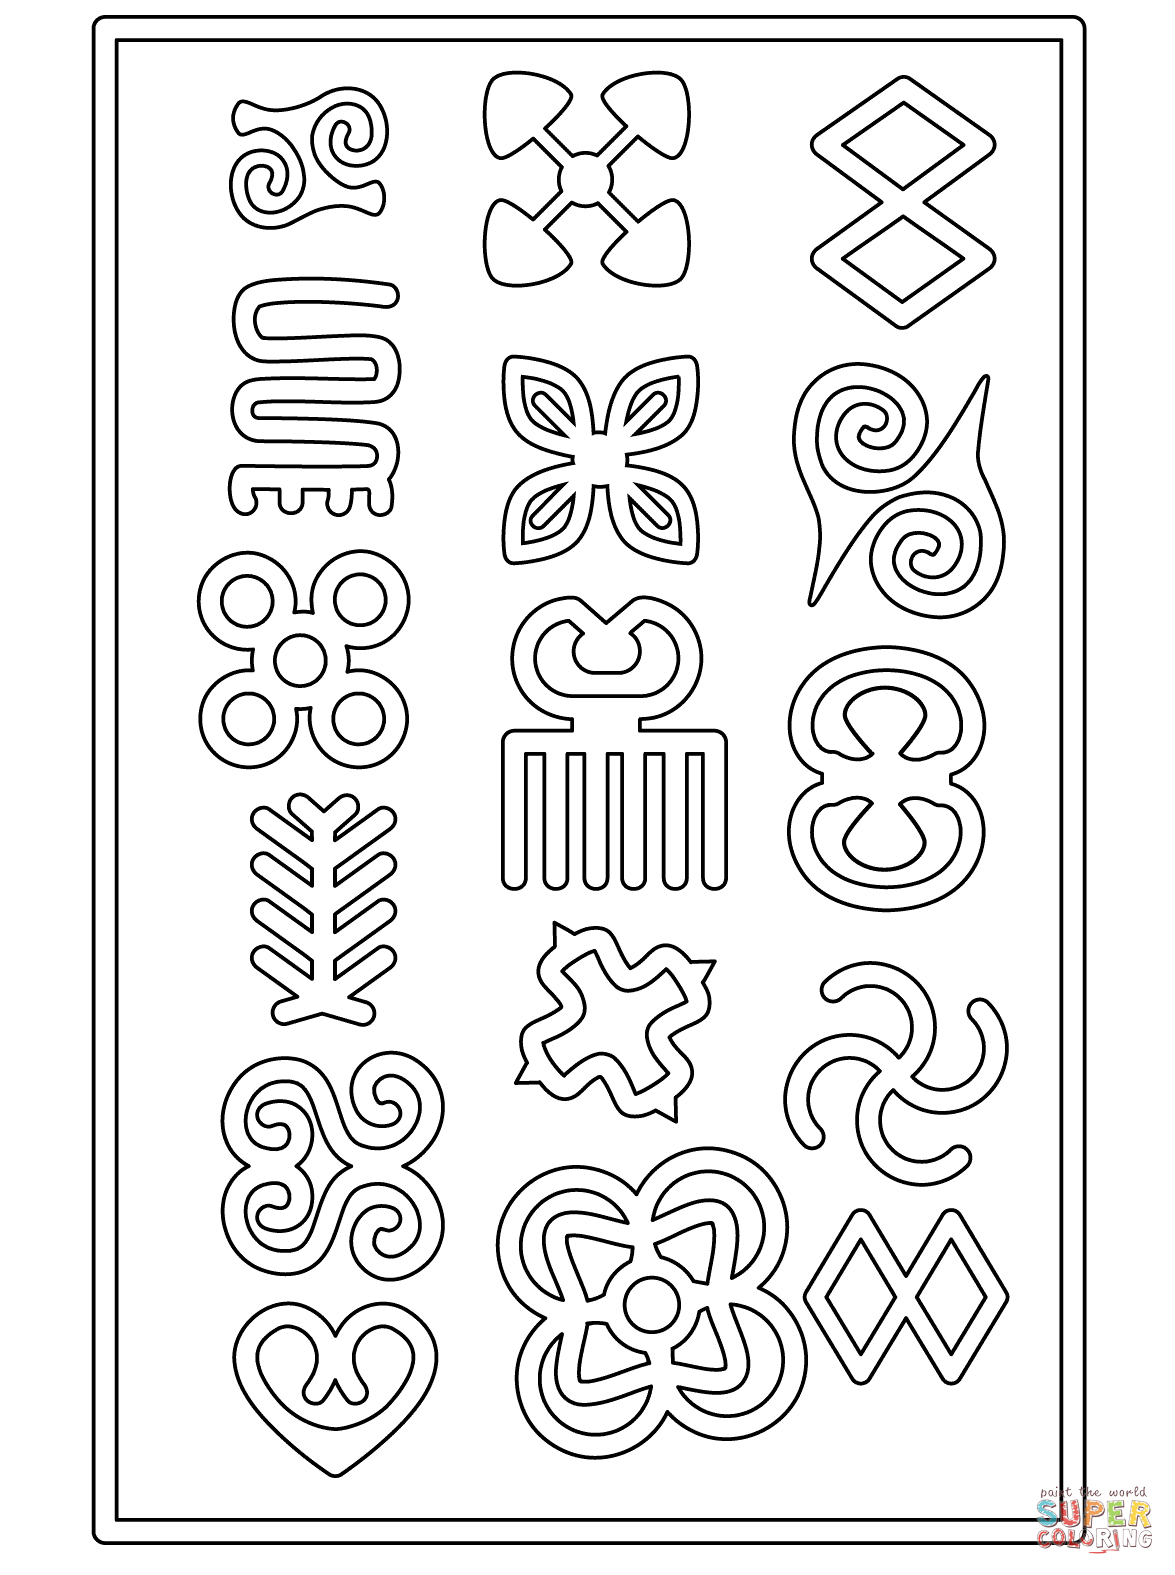 Adinkra Symbols Coloring Page From Africa Category Select From Printable Crafts Of